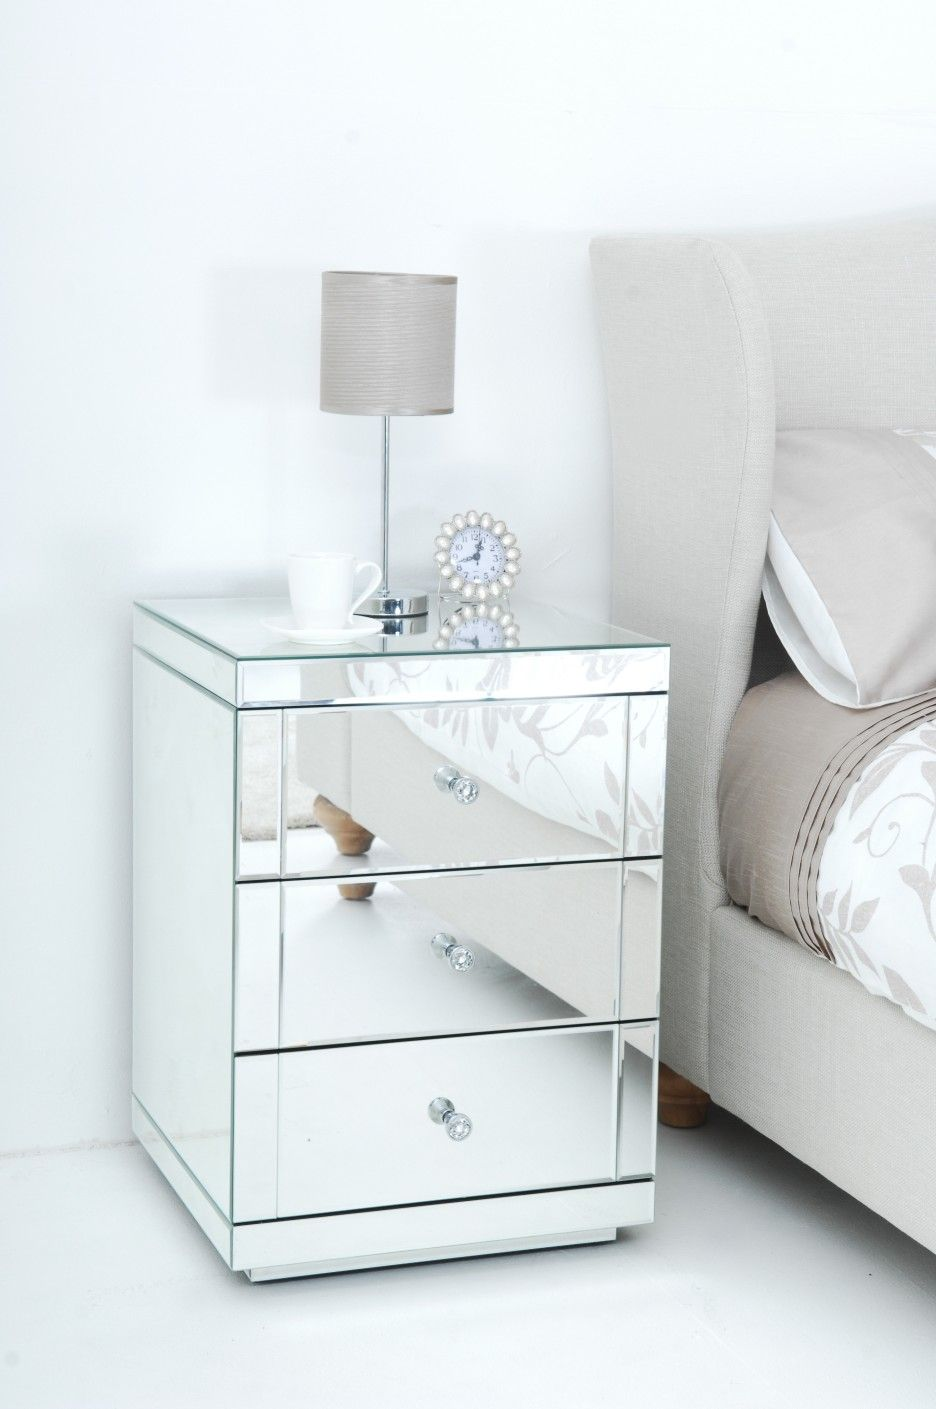 Furniture. Square Mirror Bedside Table With Three Drawers And Round Acrylic  Knobs Combined With Small Reading Lamp. Fabulous Unusual Bedside Tables For  Make ...